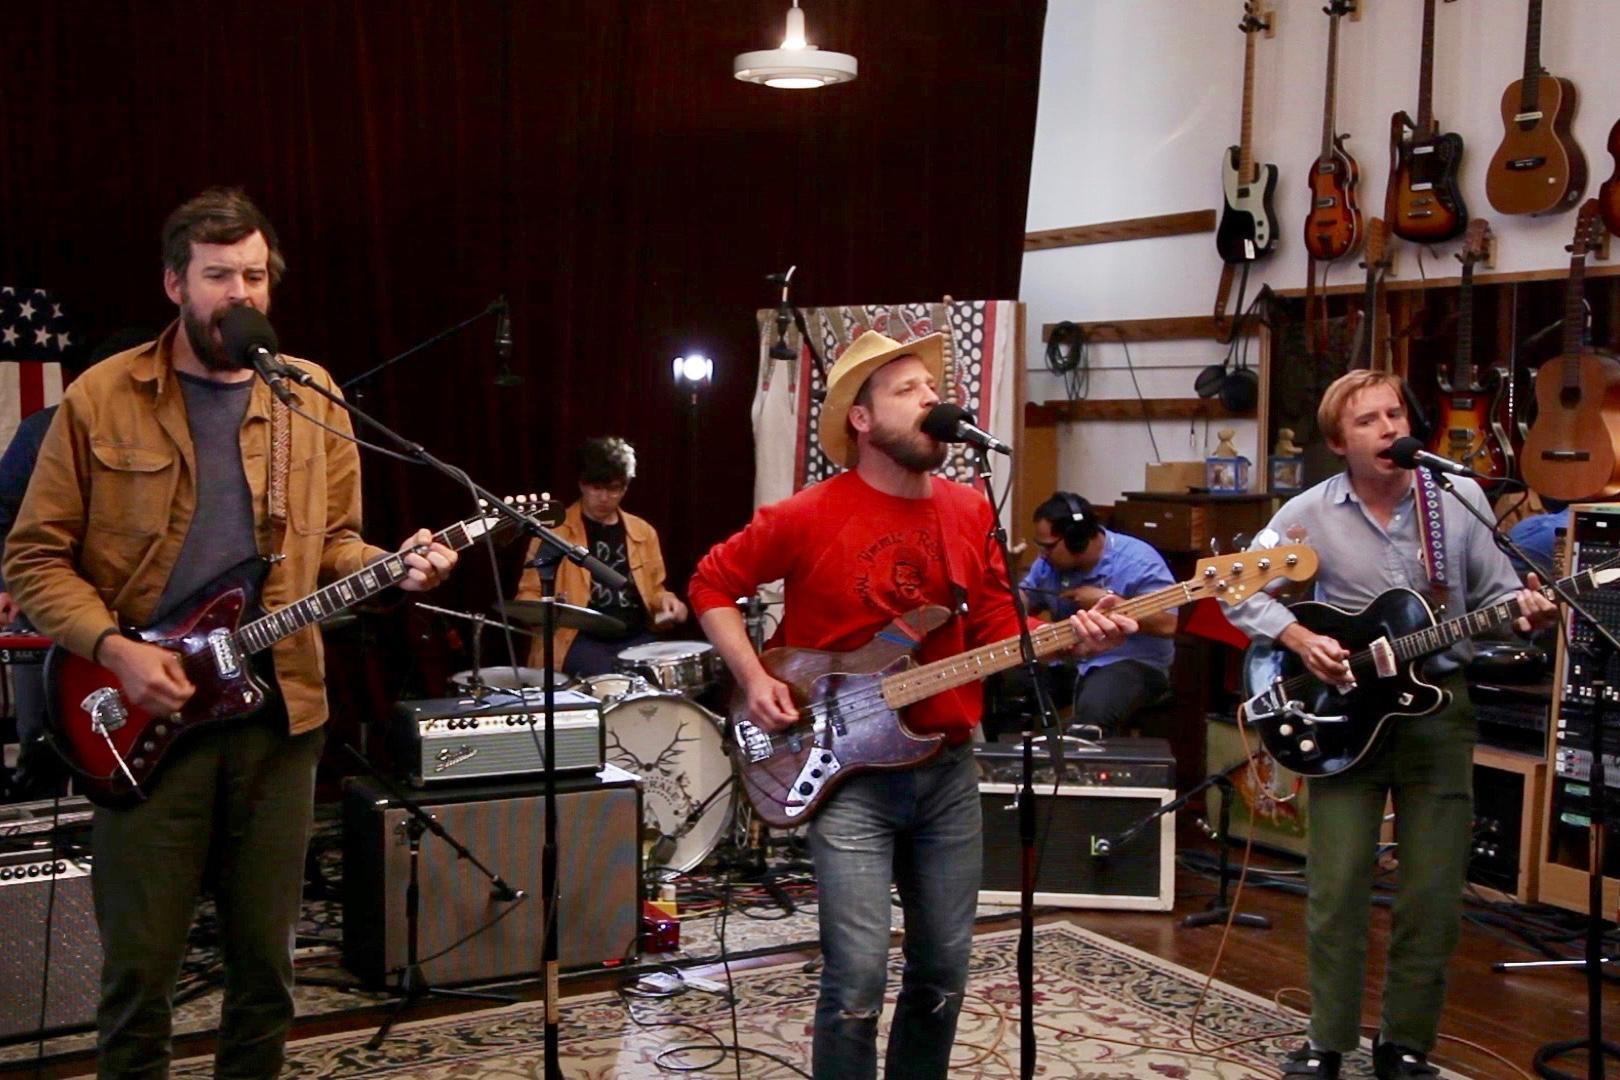 Dr. Dog records an opbmusic session at Revolver Studios, 6-8-2018